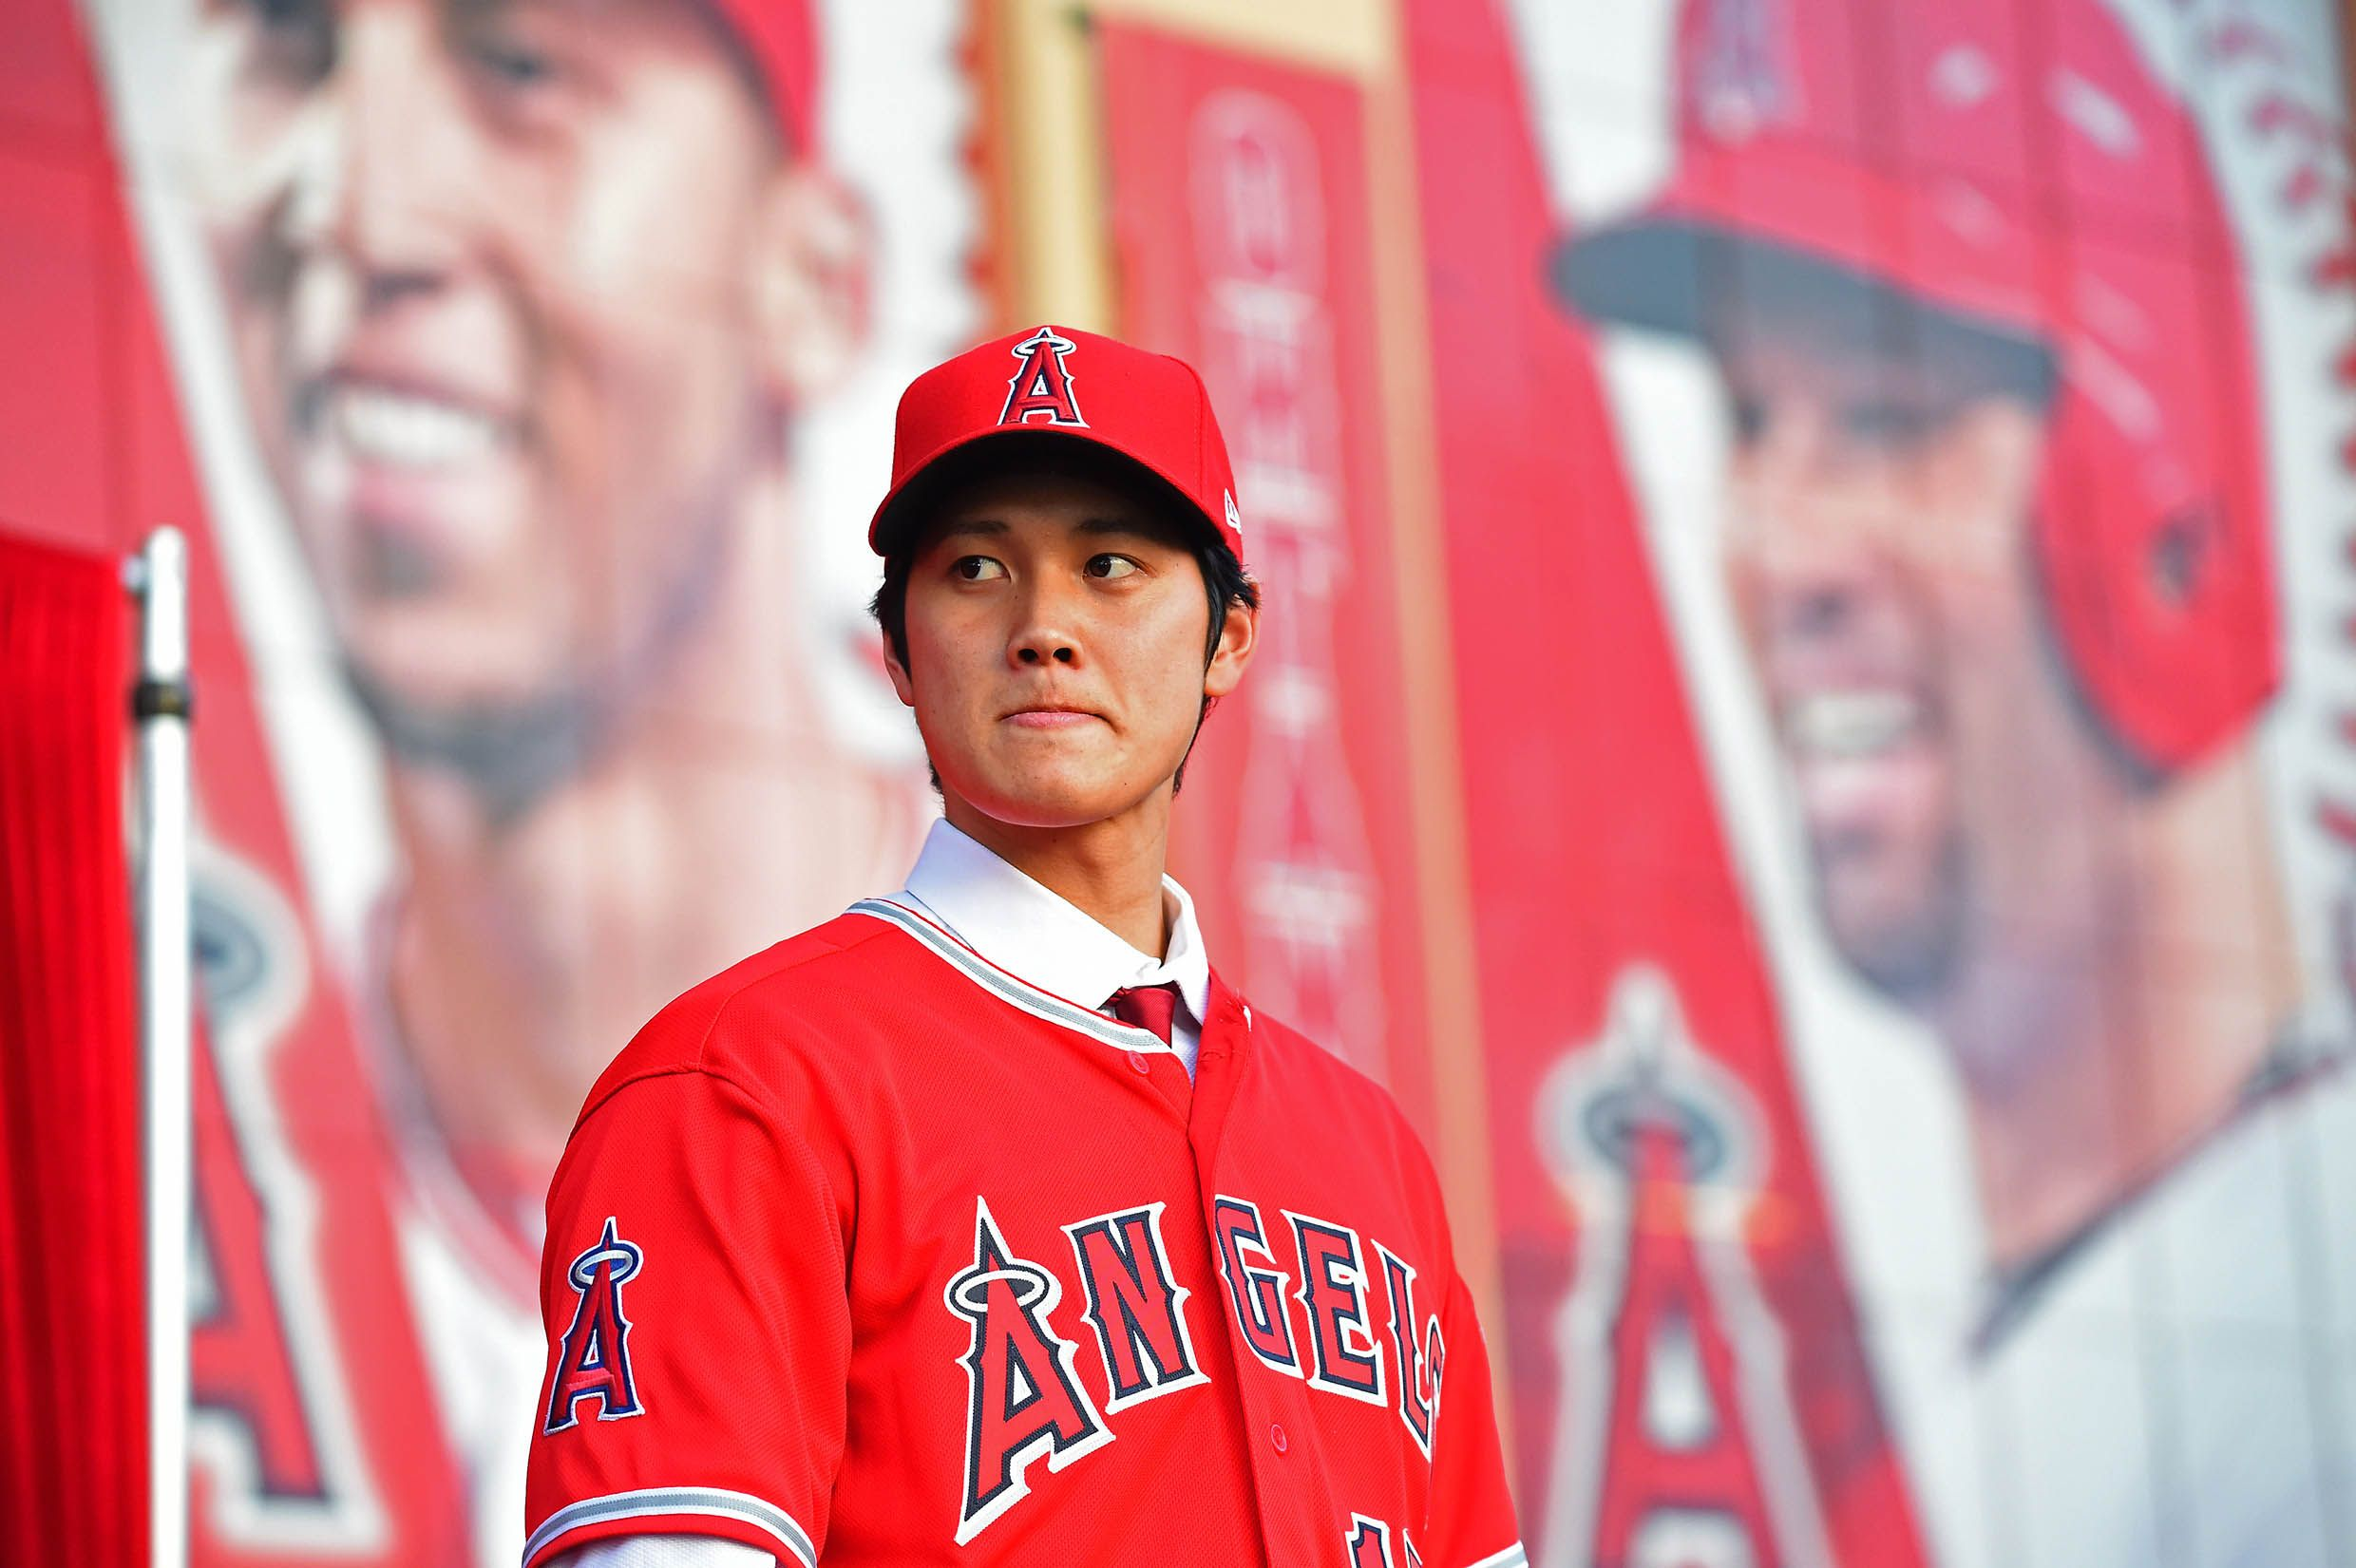 Angels welcome Shohei Ohtani, plot course for two-way Japanese star